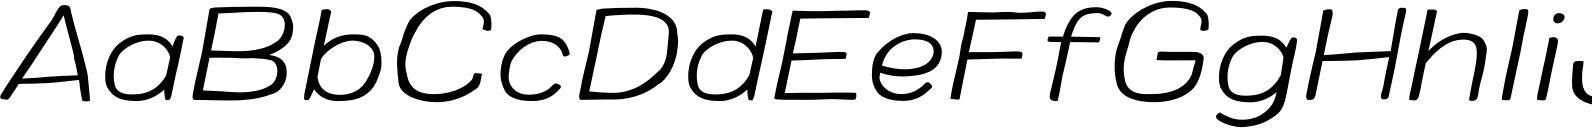 Colby Wide Extra Light Italic Font